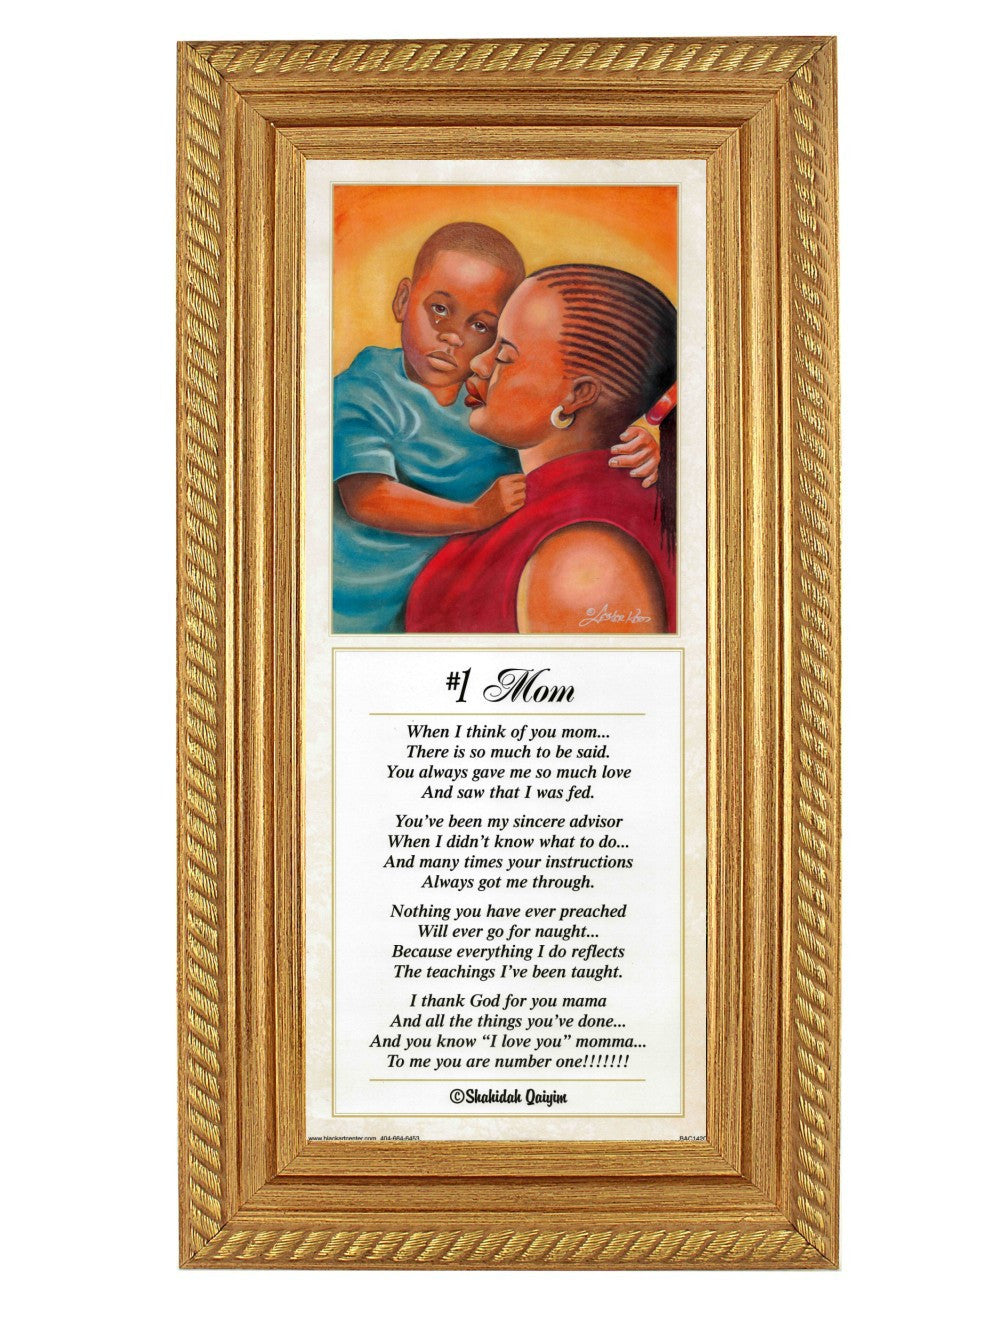 #1 Mom by Lester Kern and Shahidah (Gold Rope Frame)